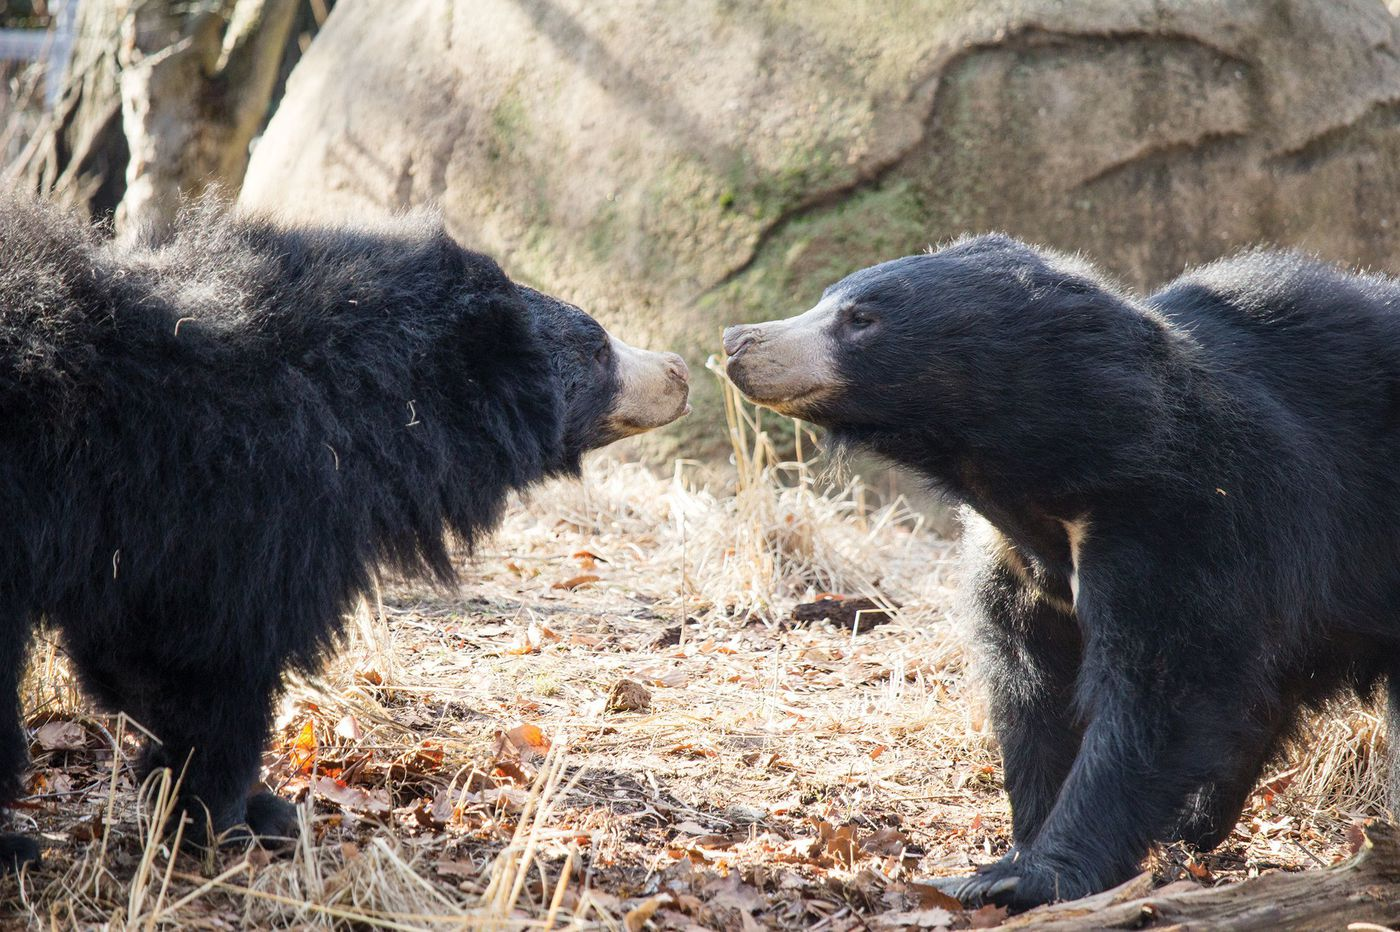 Congrats to this Philadelphia sloth bear couple that just had their first cub